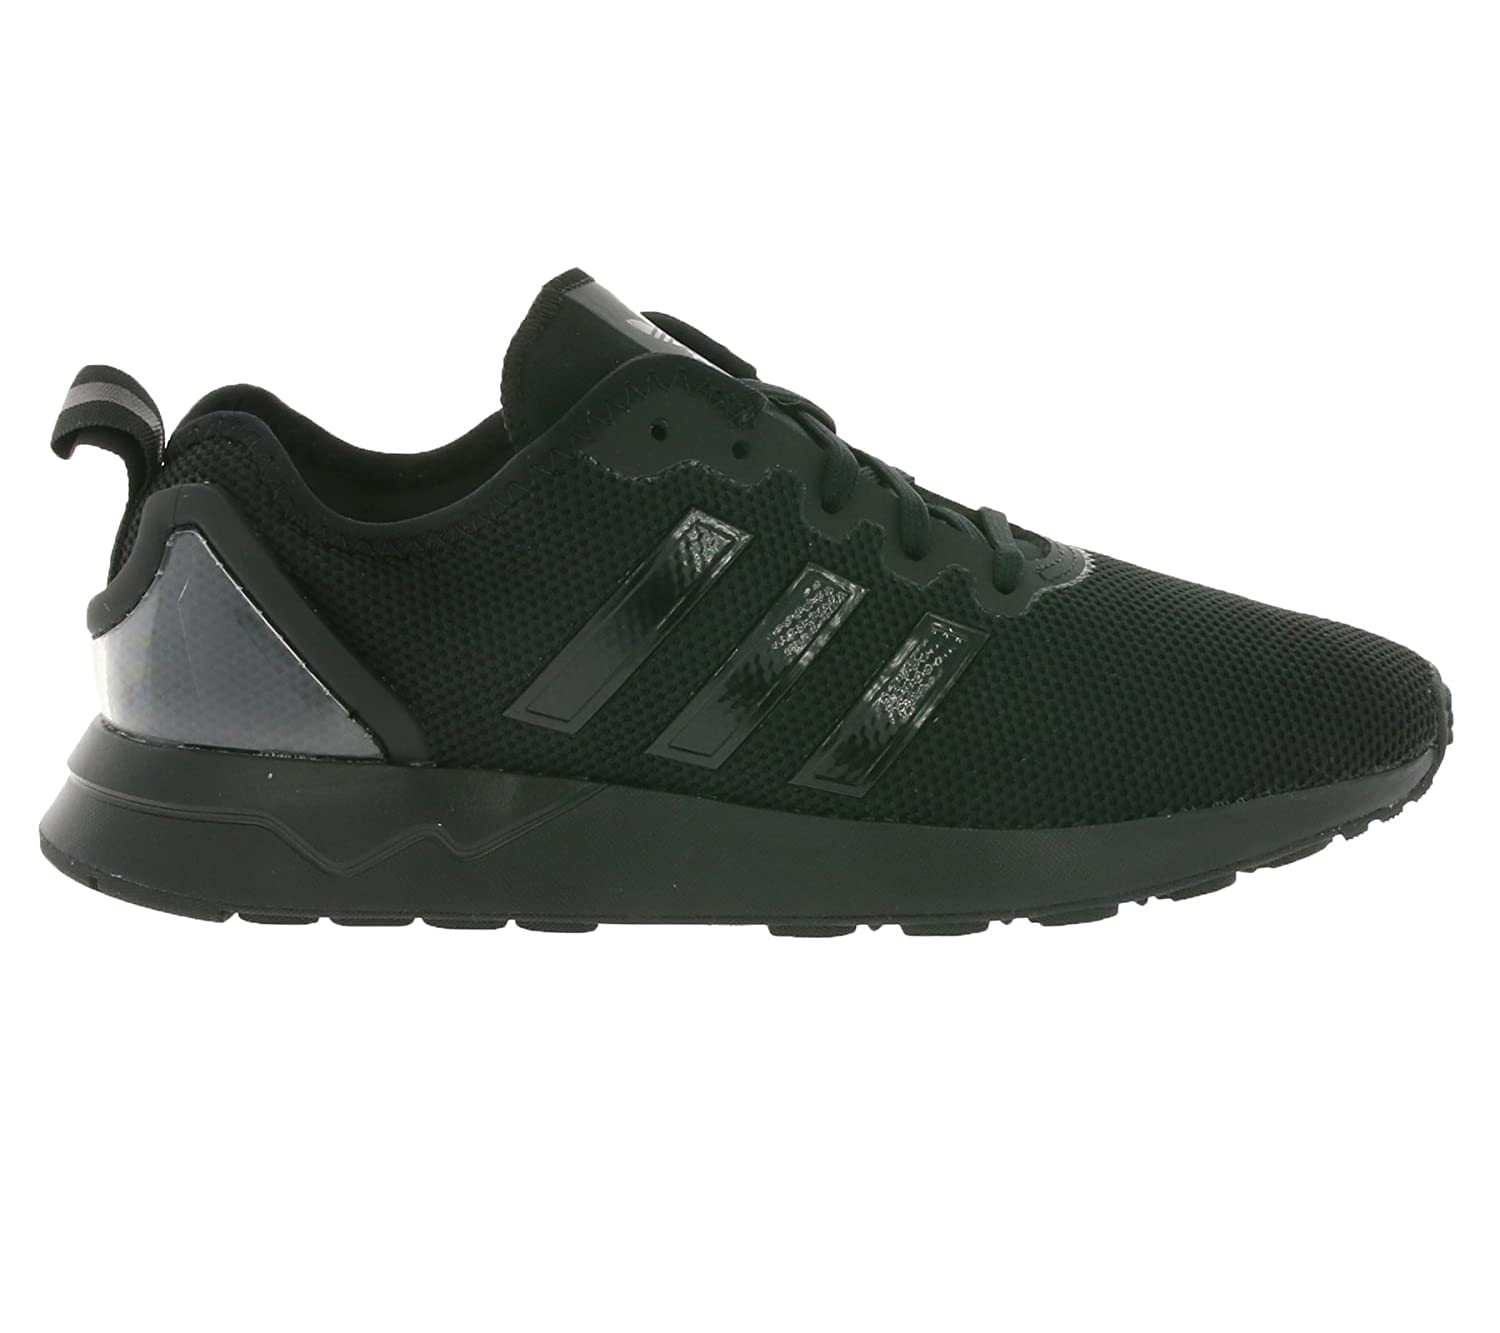 quality design c7cf8 976a6 Amazon.com | adidas Originals ZX Flux Adv J Black Mesh Youth ...